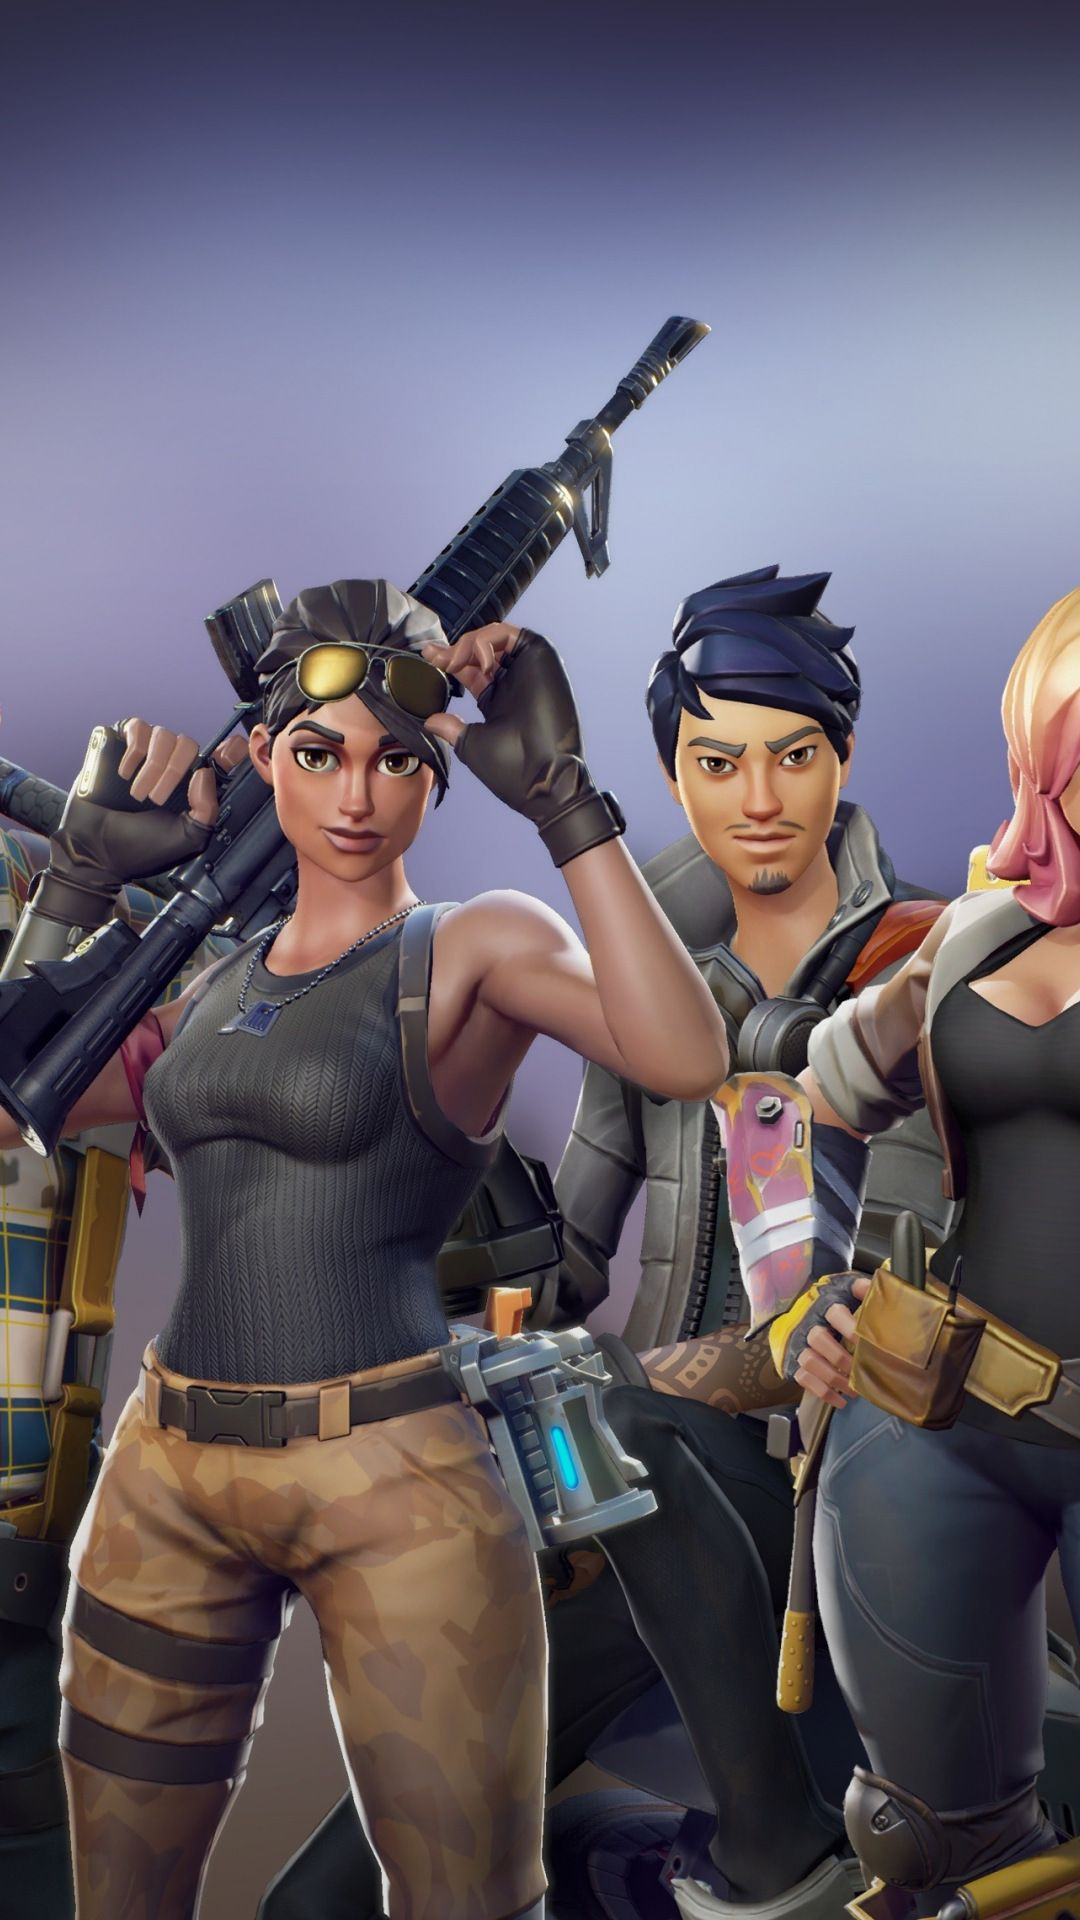 Hd Fortnite Wallpapers Cool Fortnite Wallpapers Background Hd Iphone Android 4k In 2019 Video Games Free Games Games